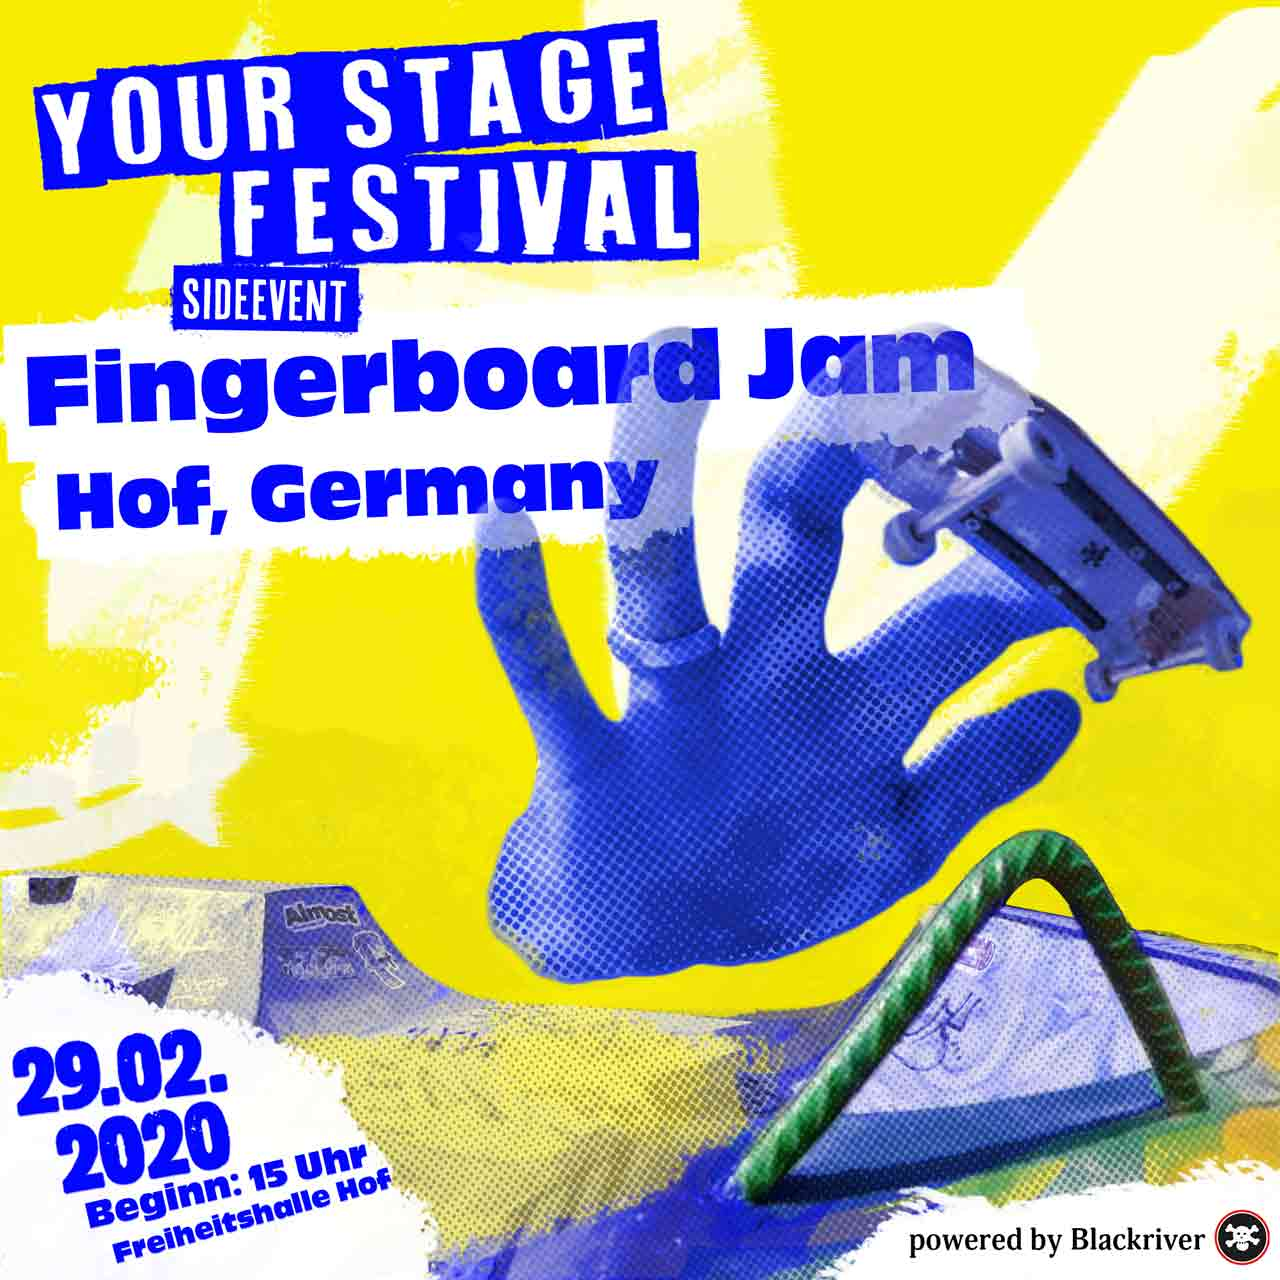 Blackriver Fingerboard Jam - Your Stage Festival 2020